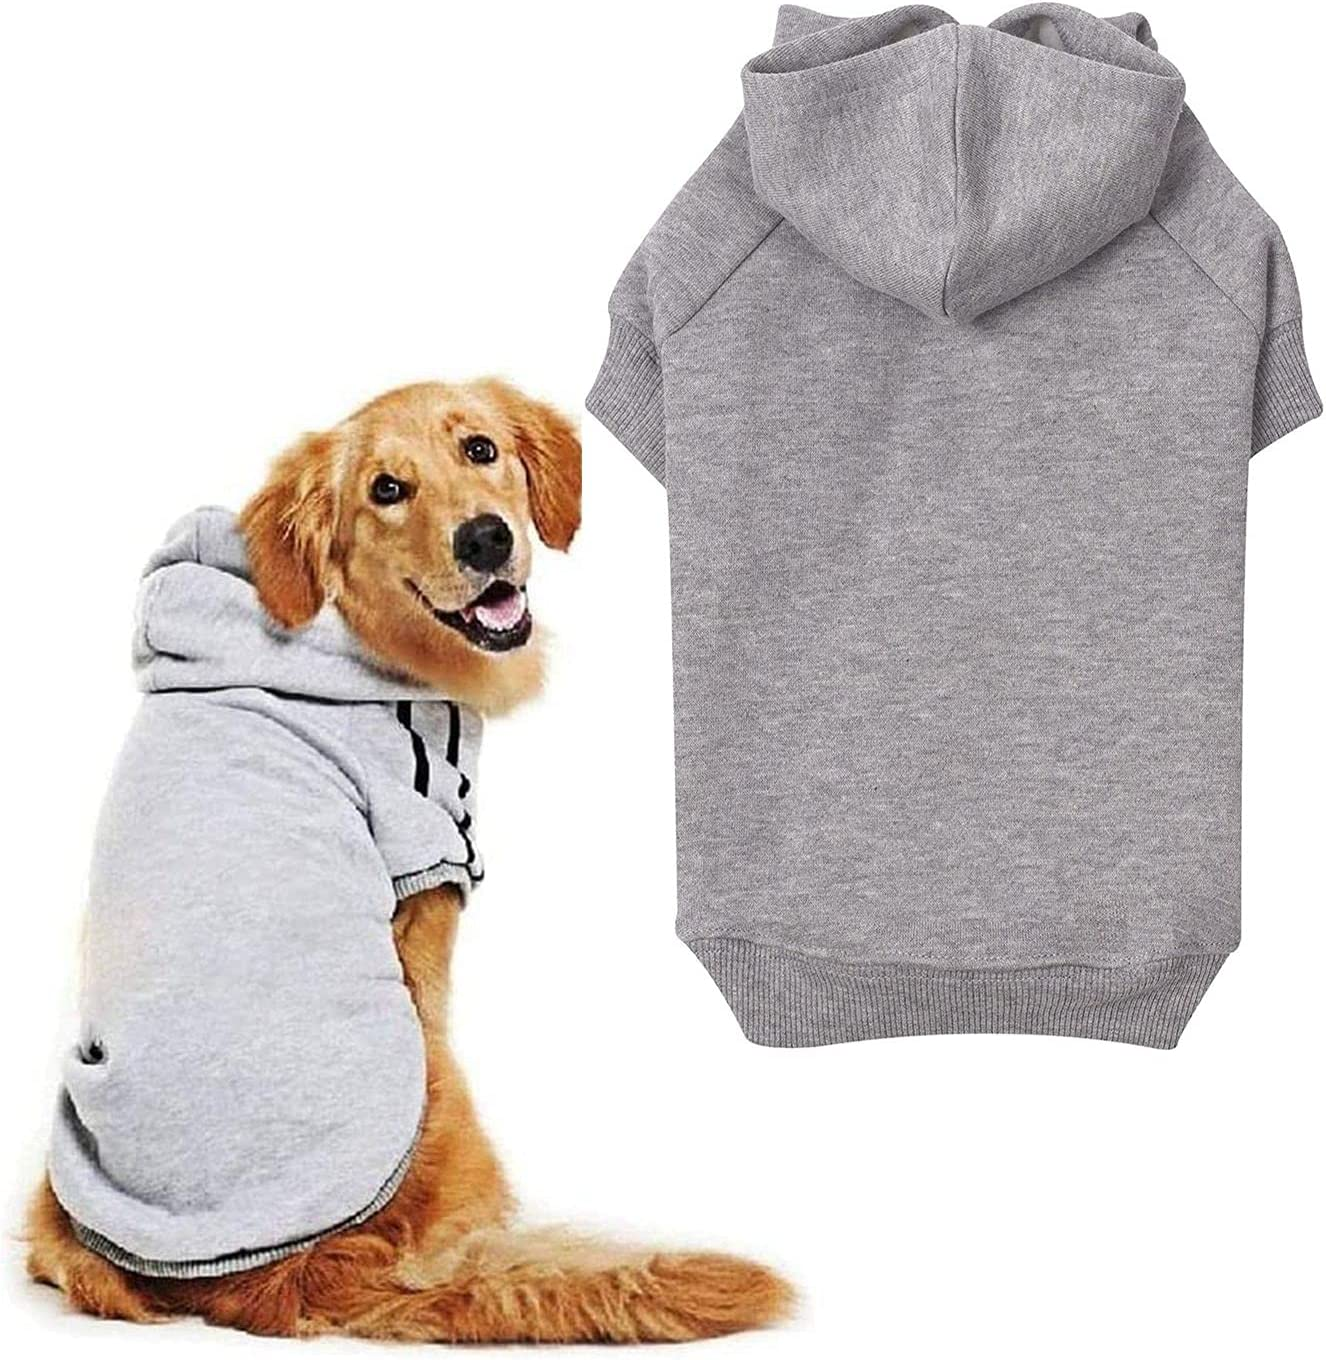 Columbus Mall OWBB Dog Hoodies Made of Soft Warm Inside Miami Mall Clothes Lig Velvet